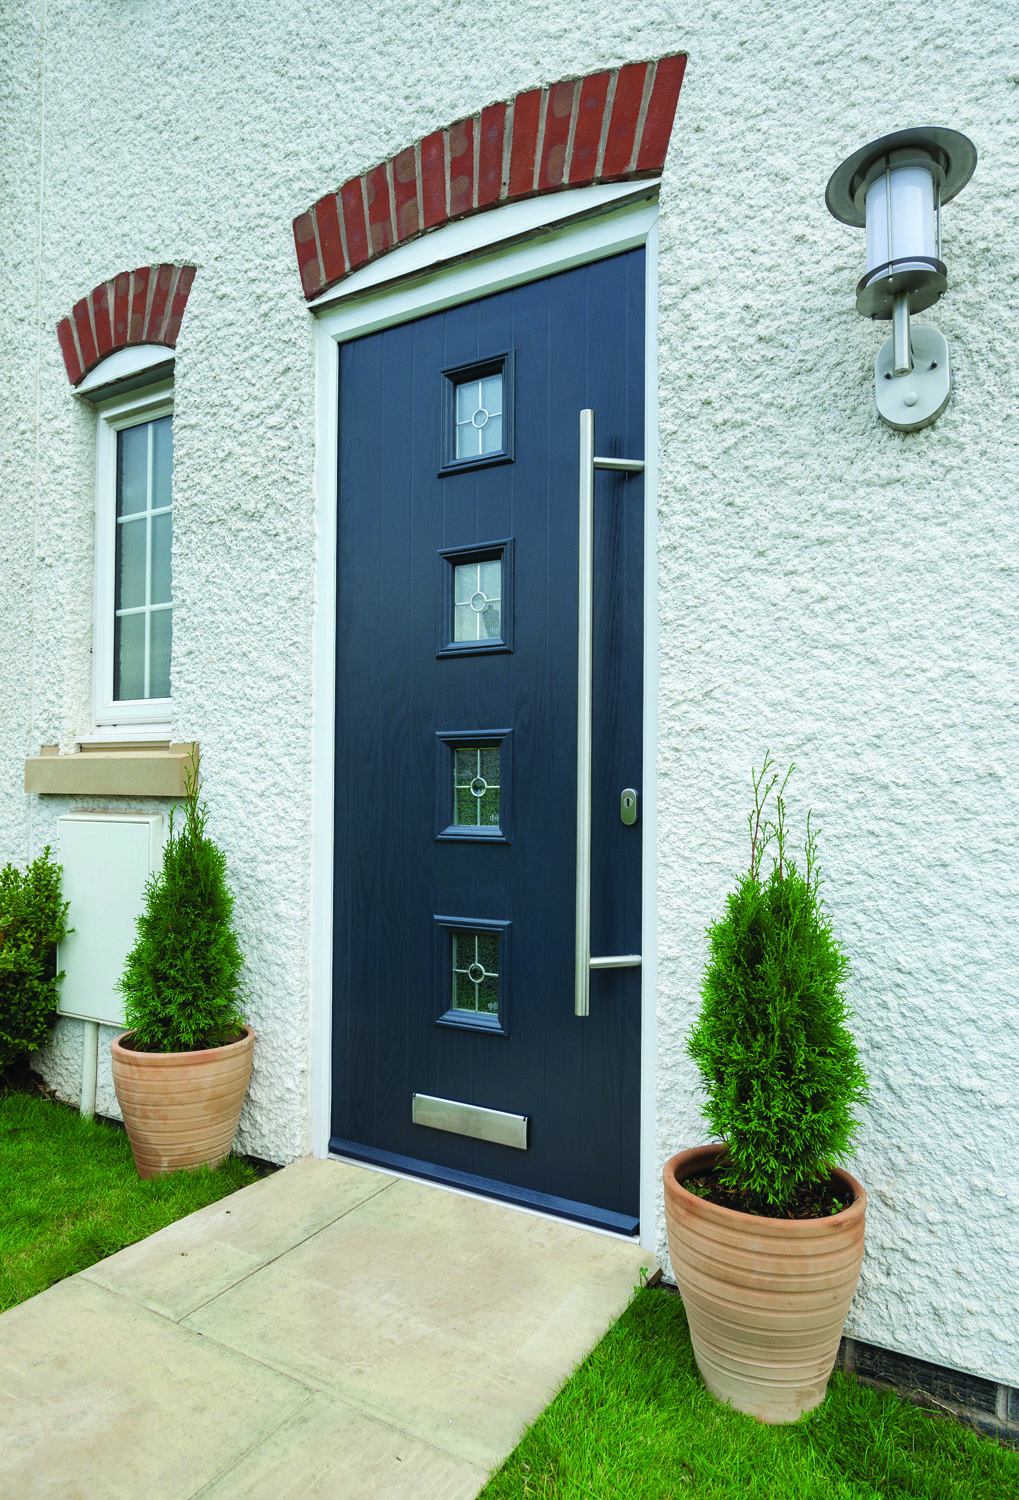 Residential External Doors From Woodstock In North Devon